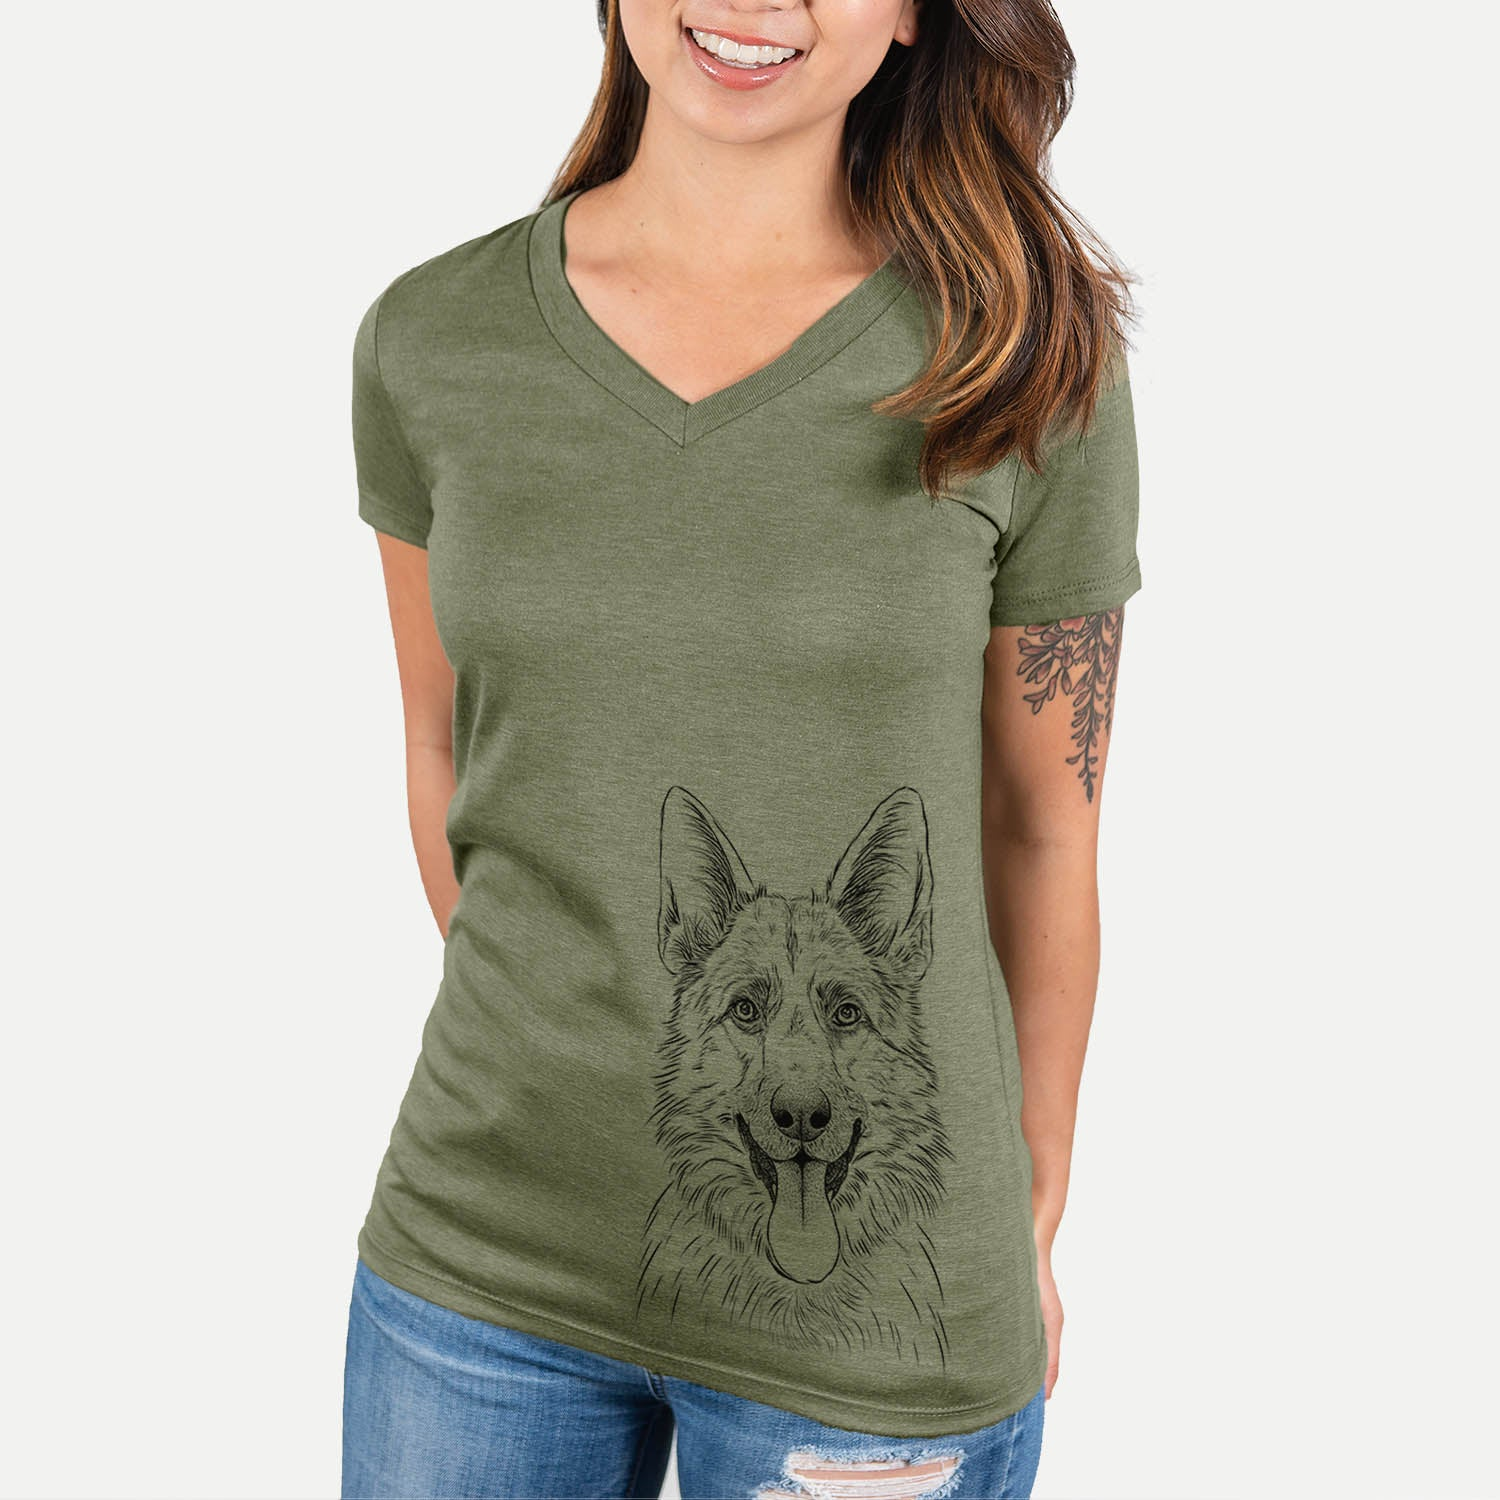 Grace the German Shepherd - Women's Modern Fit V-neck Shirt